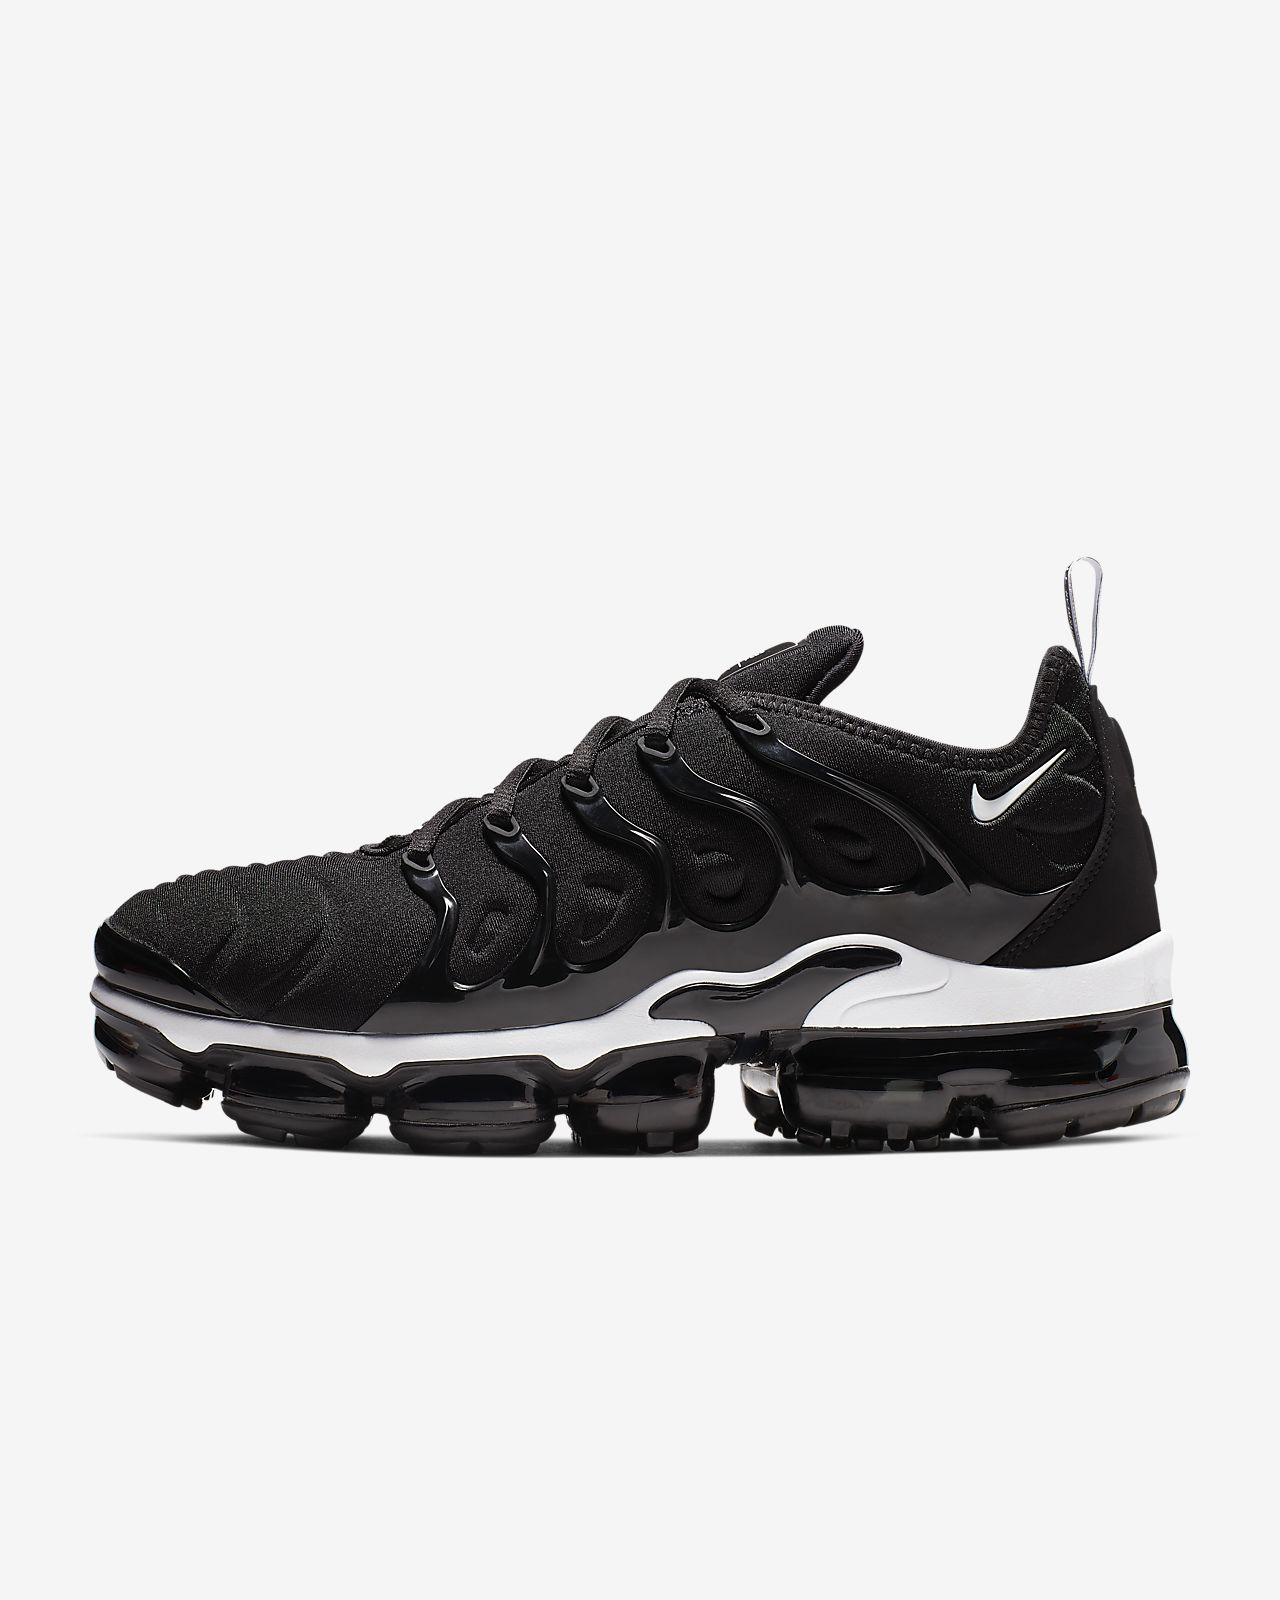 af1869d4264 Nike Air VaporMax Plus Men s Shoe. Nike.com CA